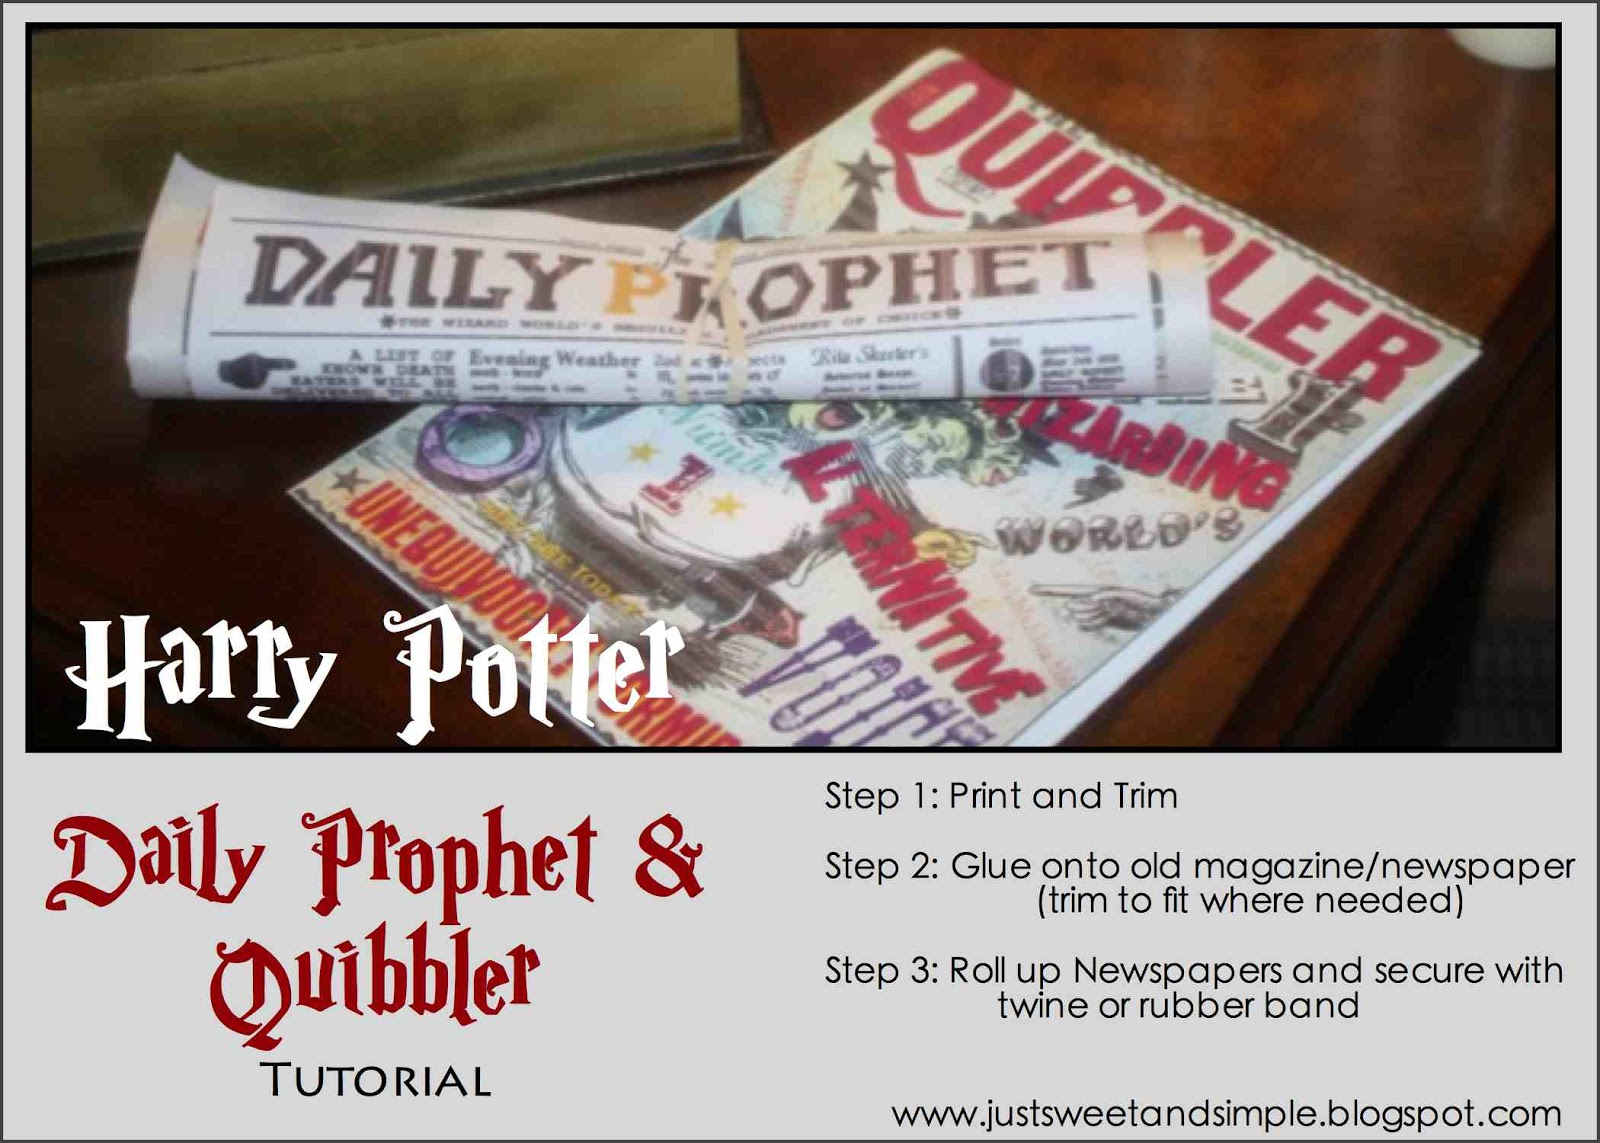 image about Quibbler Printable identify particularly Lovable and Basic: Harry Potter Everyday Prophet Quibbler